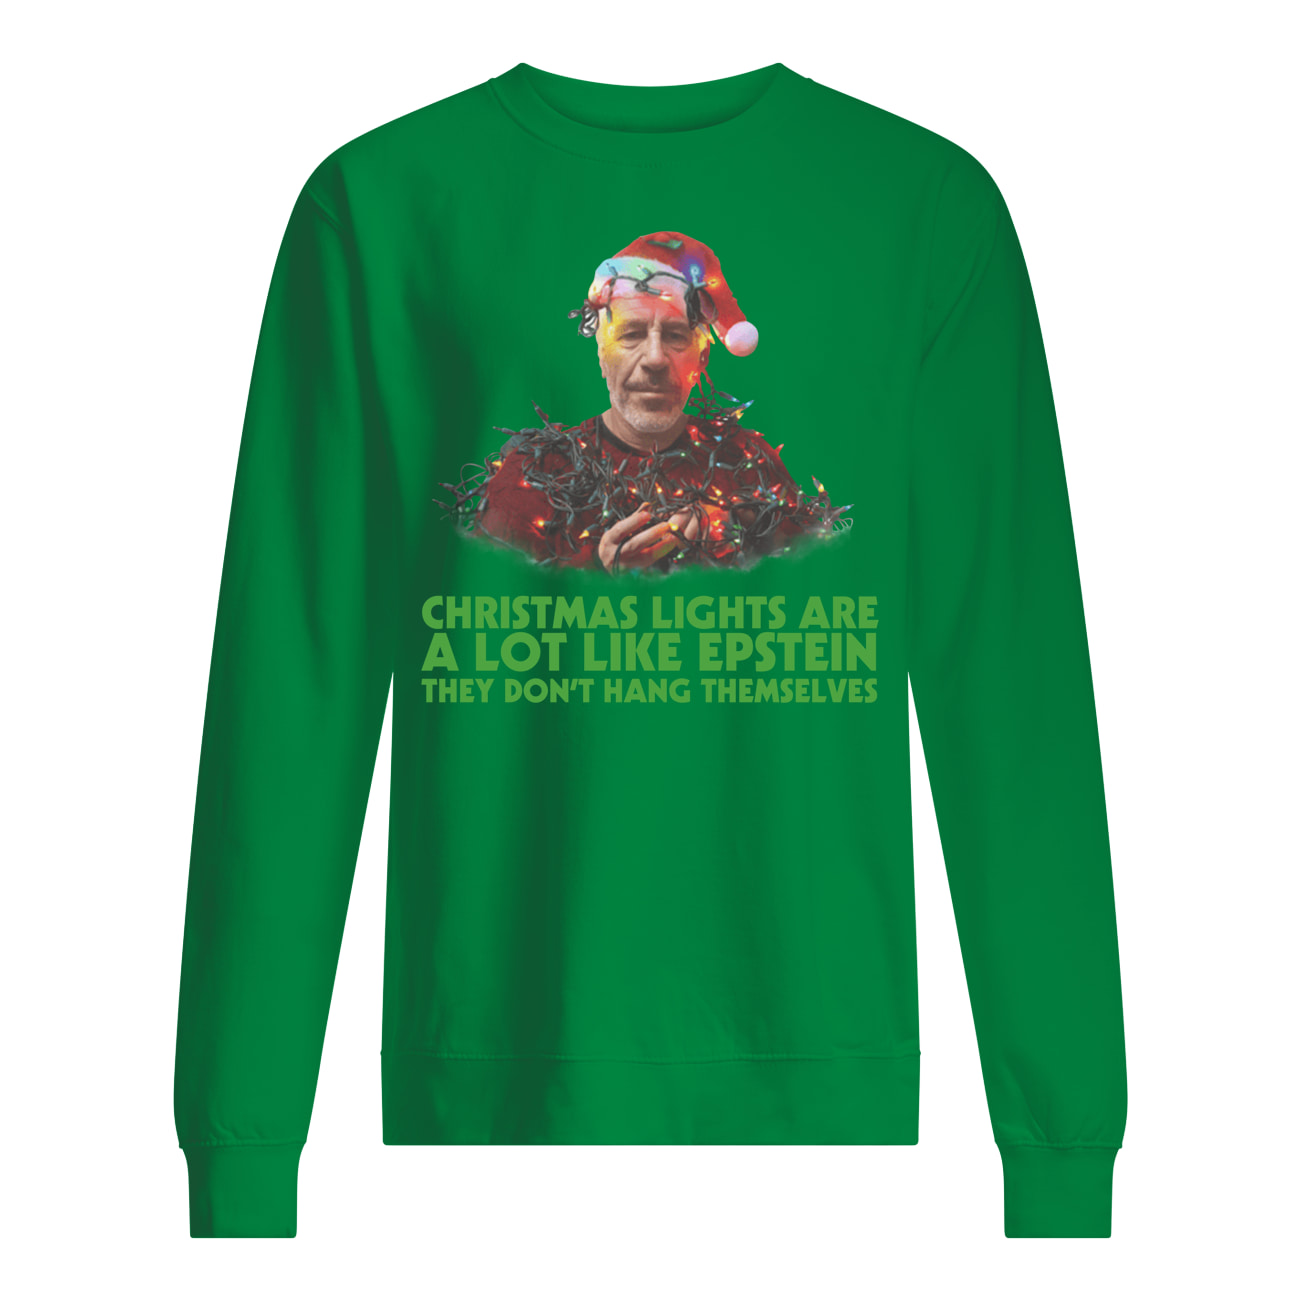 Jeffrey epstein christmas lights are a lot like epstein they don't hang themselves sweatshirt